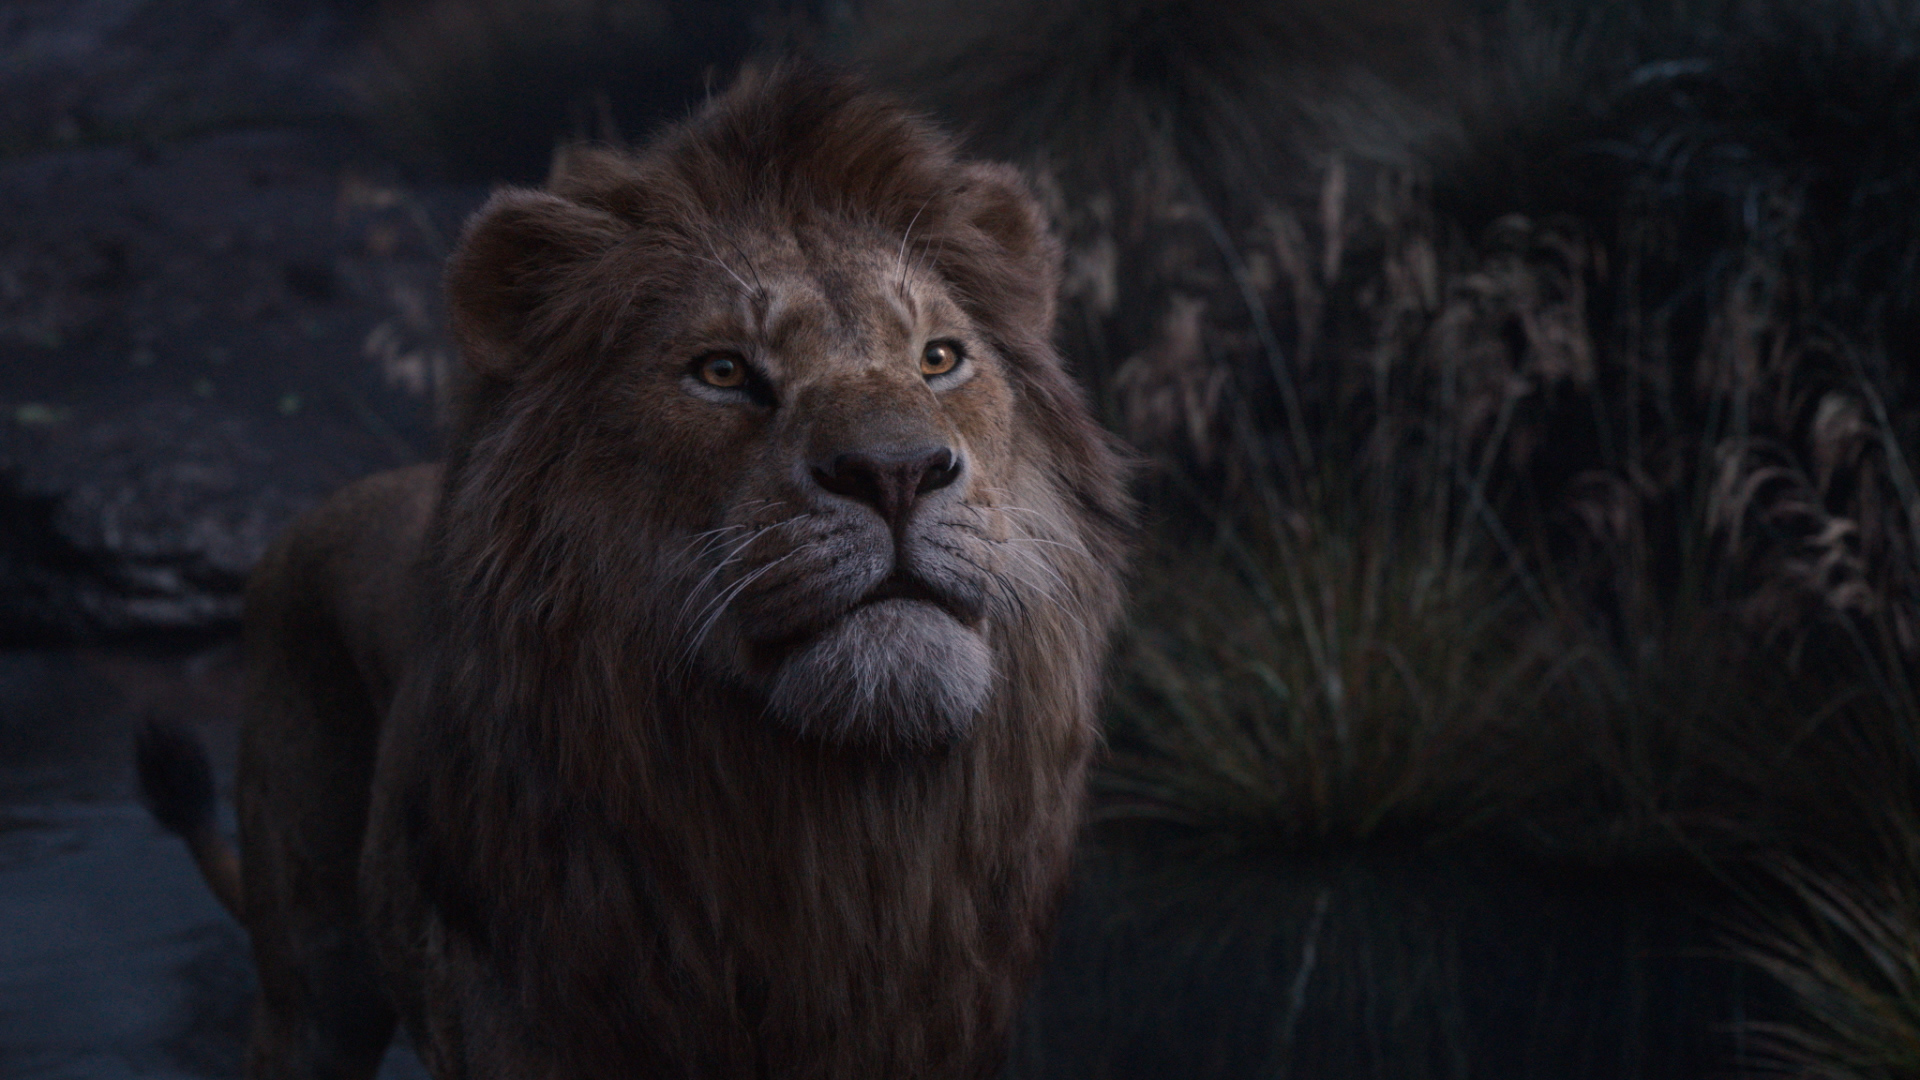 The Lion King 2019 Always Together